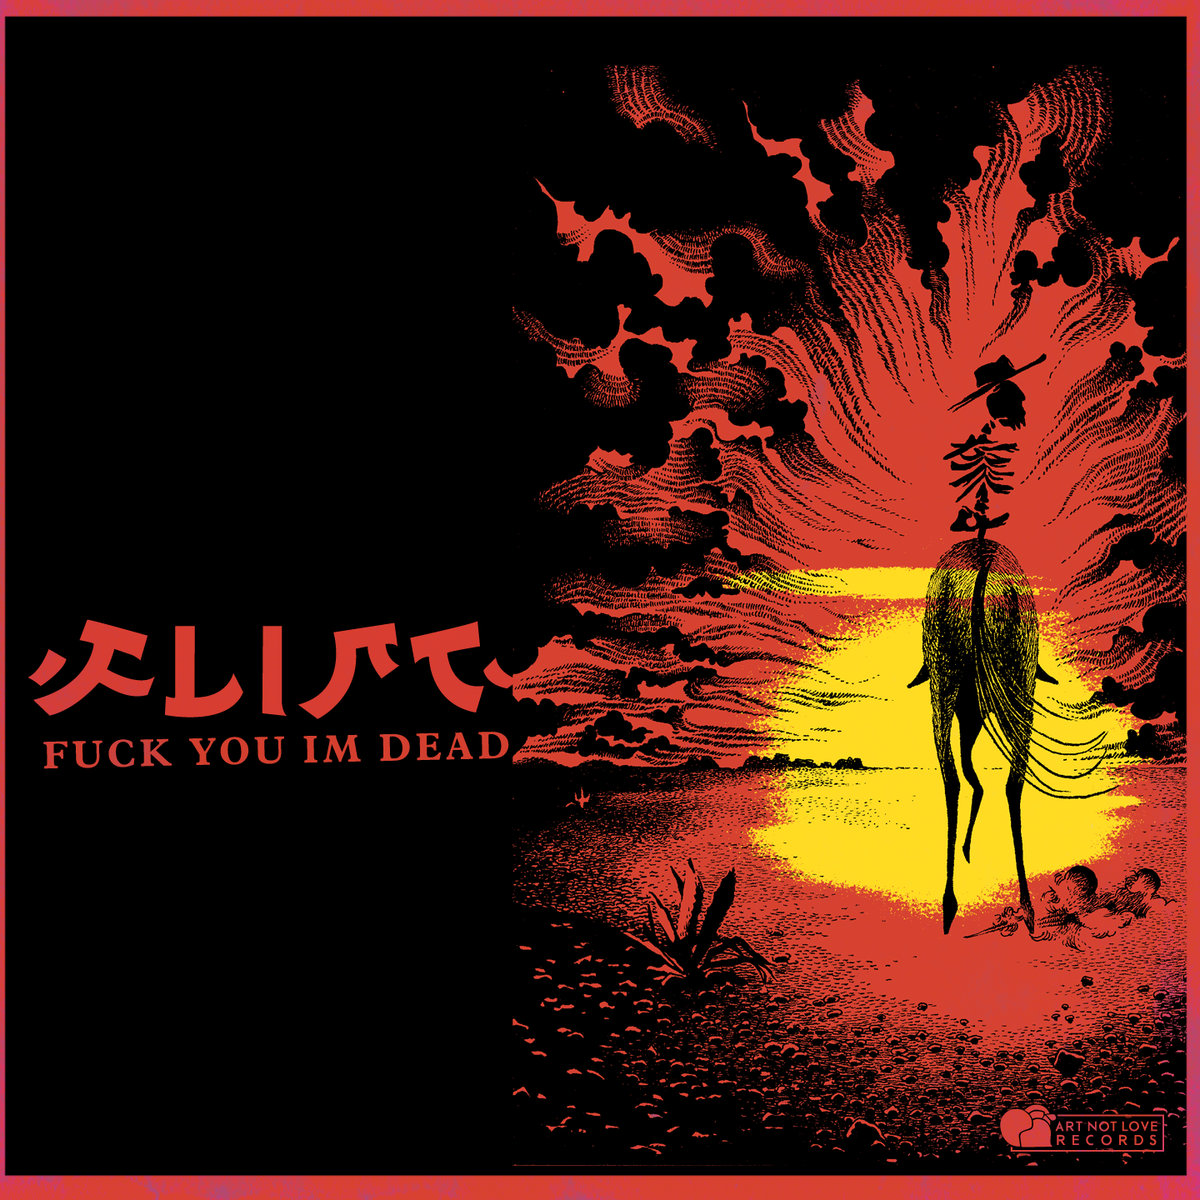 Fuck You Im Dead album art